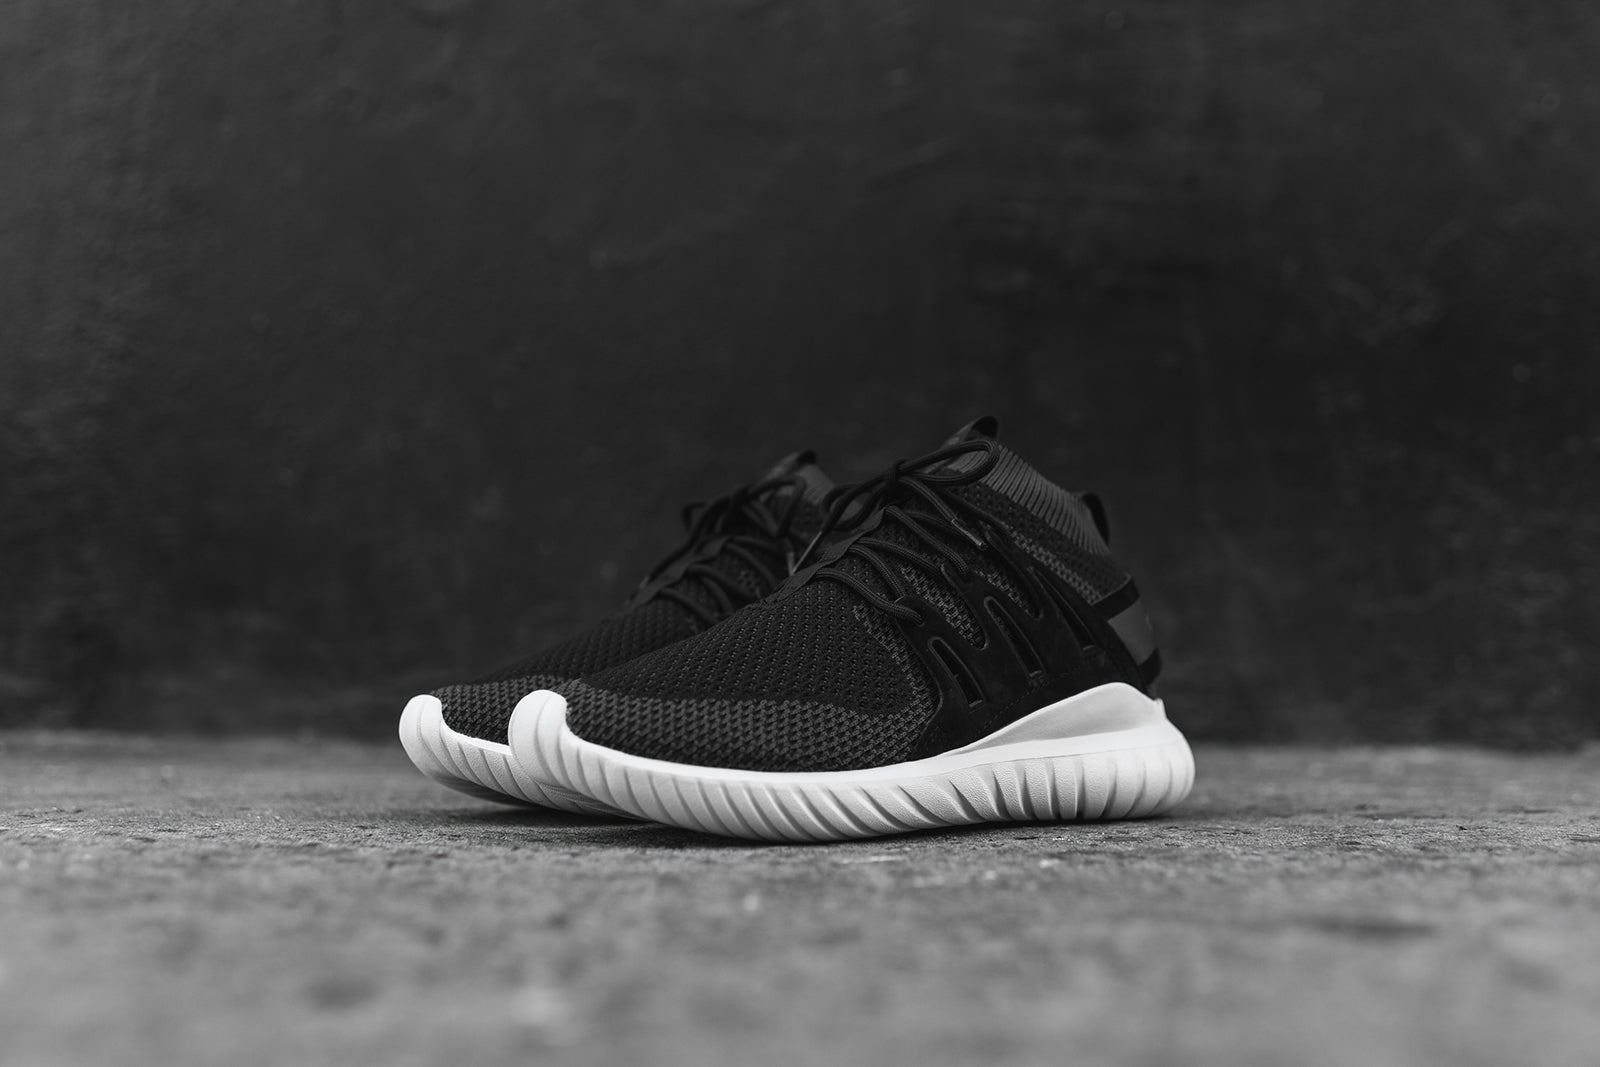 newest collection ebd42 57cf0 adidas Tubular Nova Primeknit - Black / White – Kith